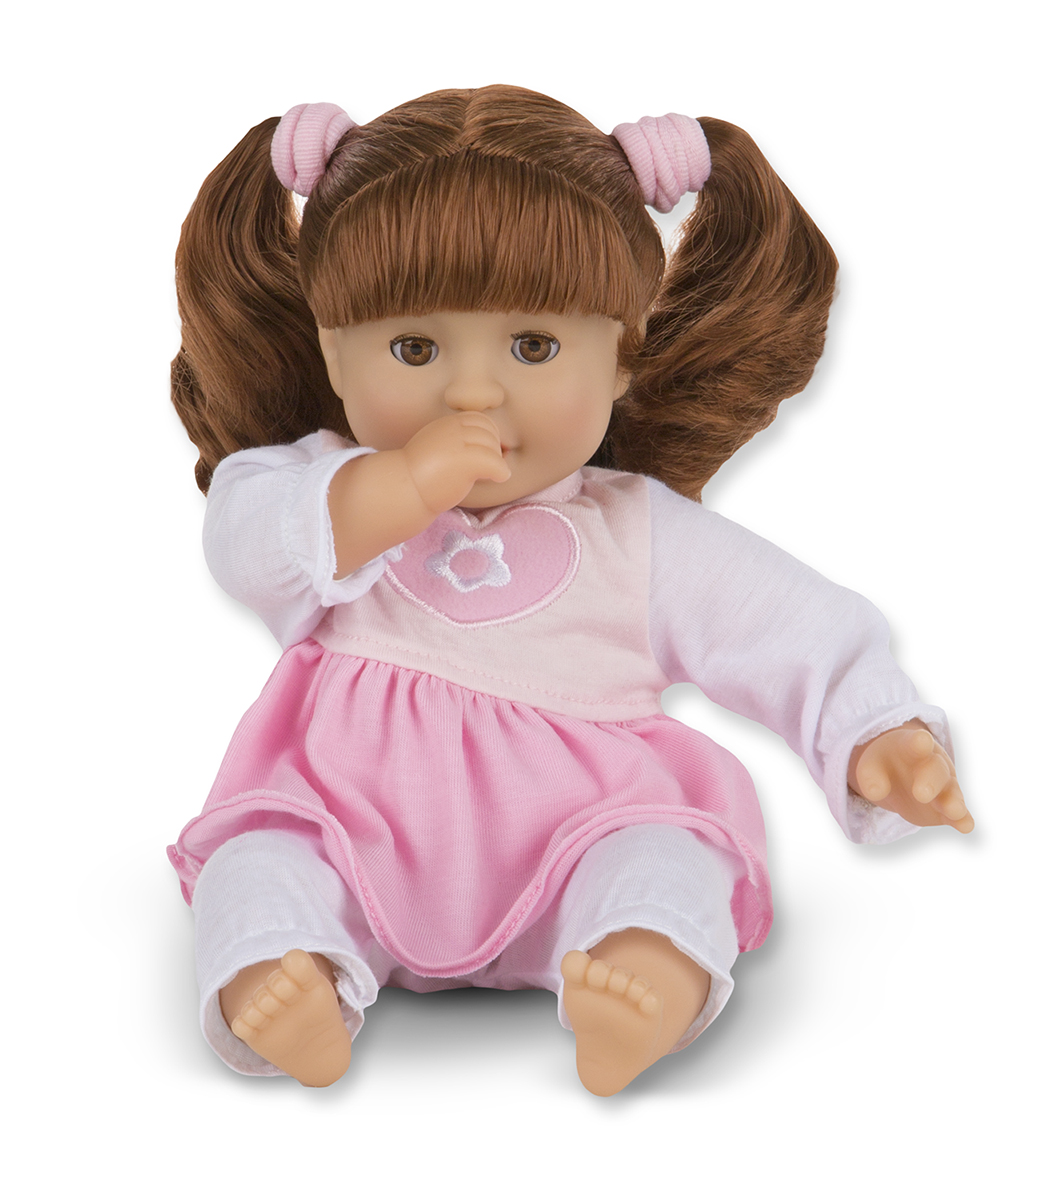 Best Dolls For Girls Ages 3 6 Doll Diaries